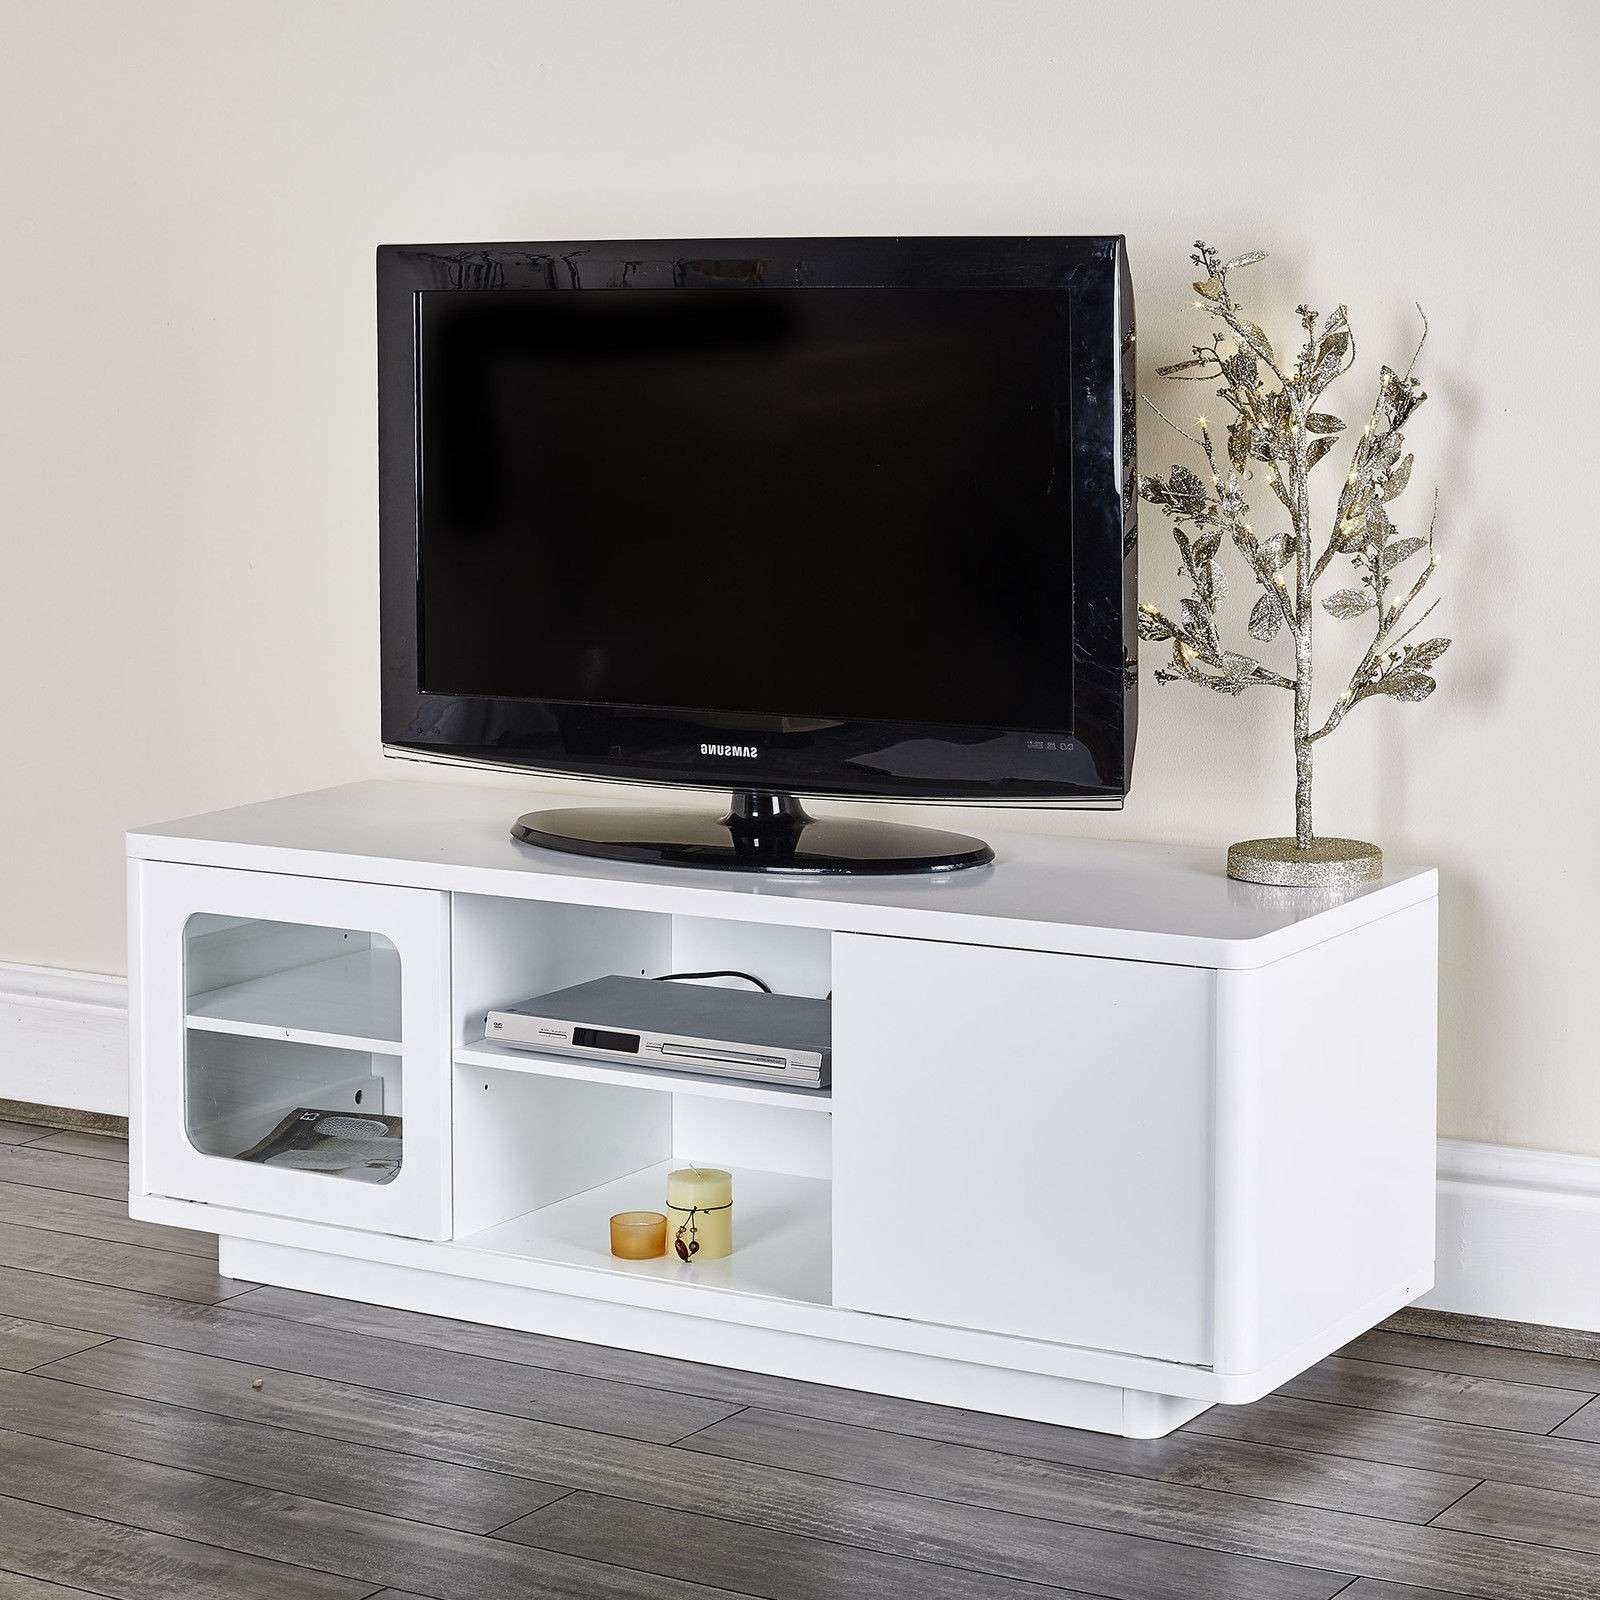 Modern White Tv Entertainment Unit Abreo Home Furniture Intended For Modern White Tv Stands (View 15 of 15)